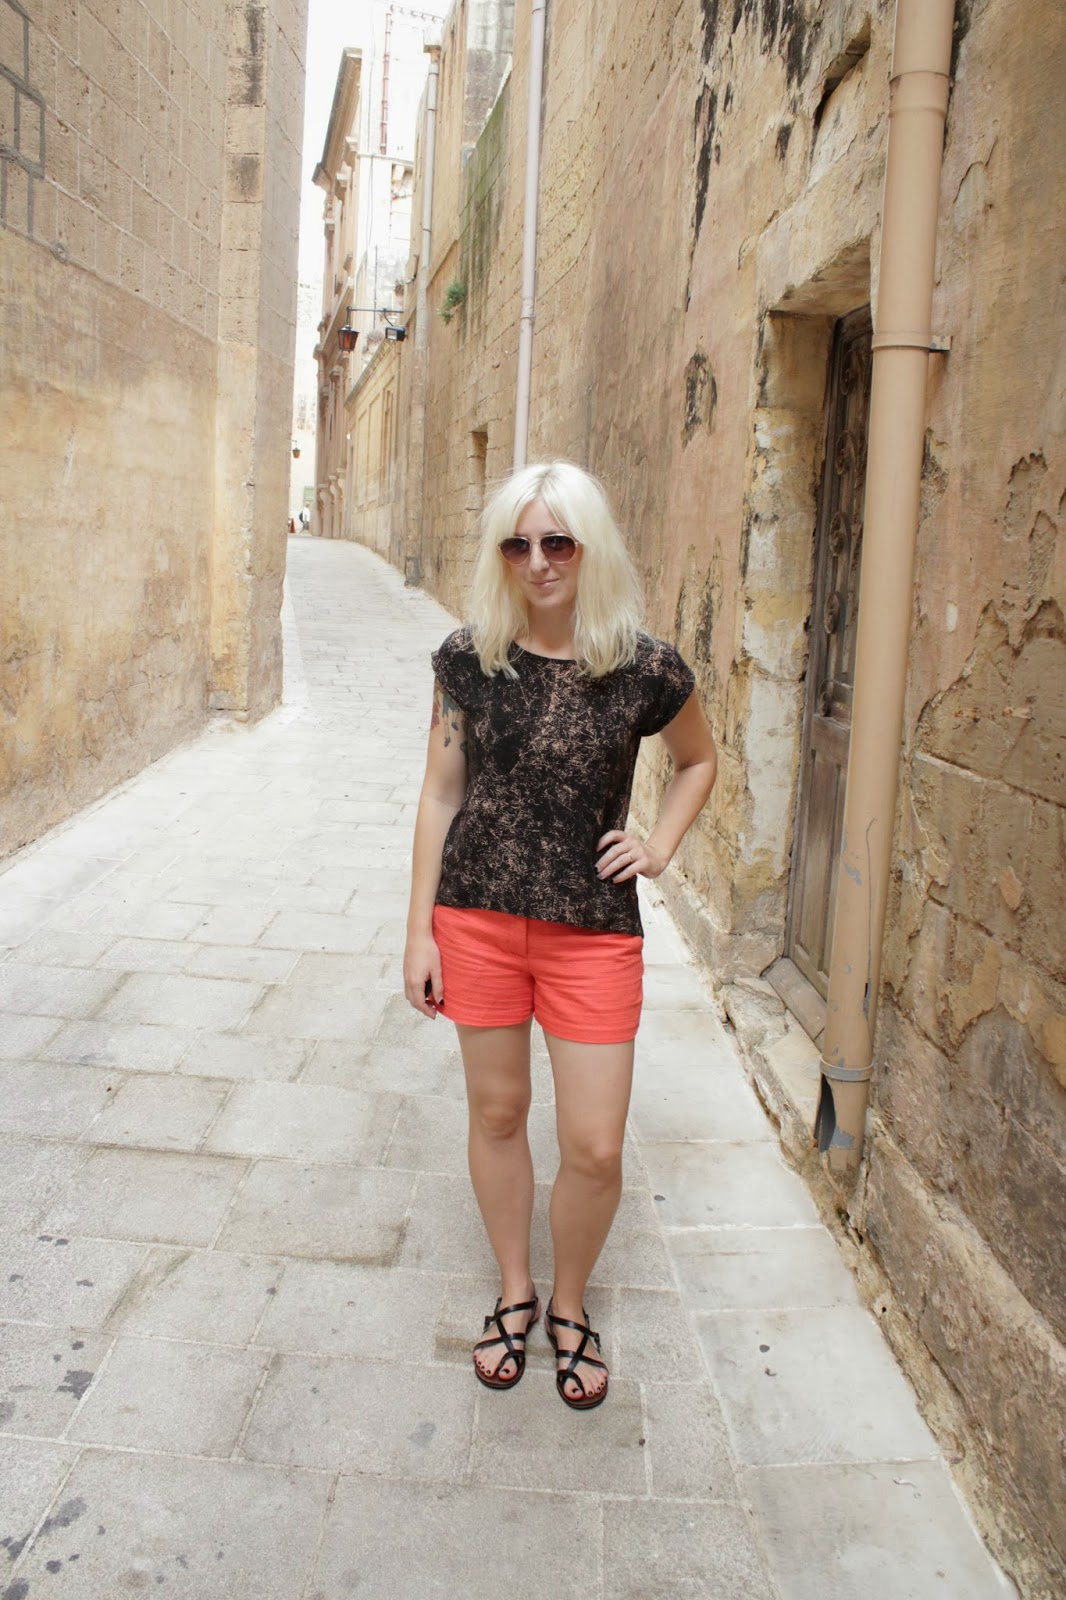 nashville narnian: What I Wore on our Mediterranean Cruise